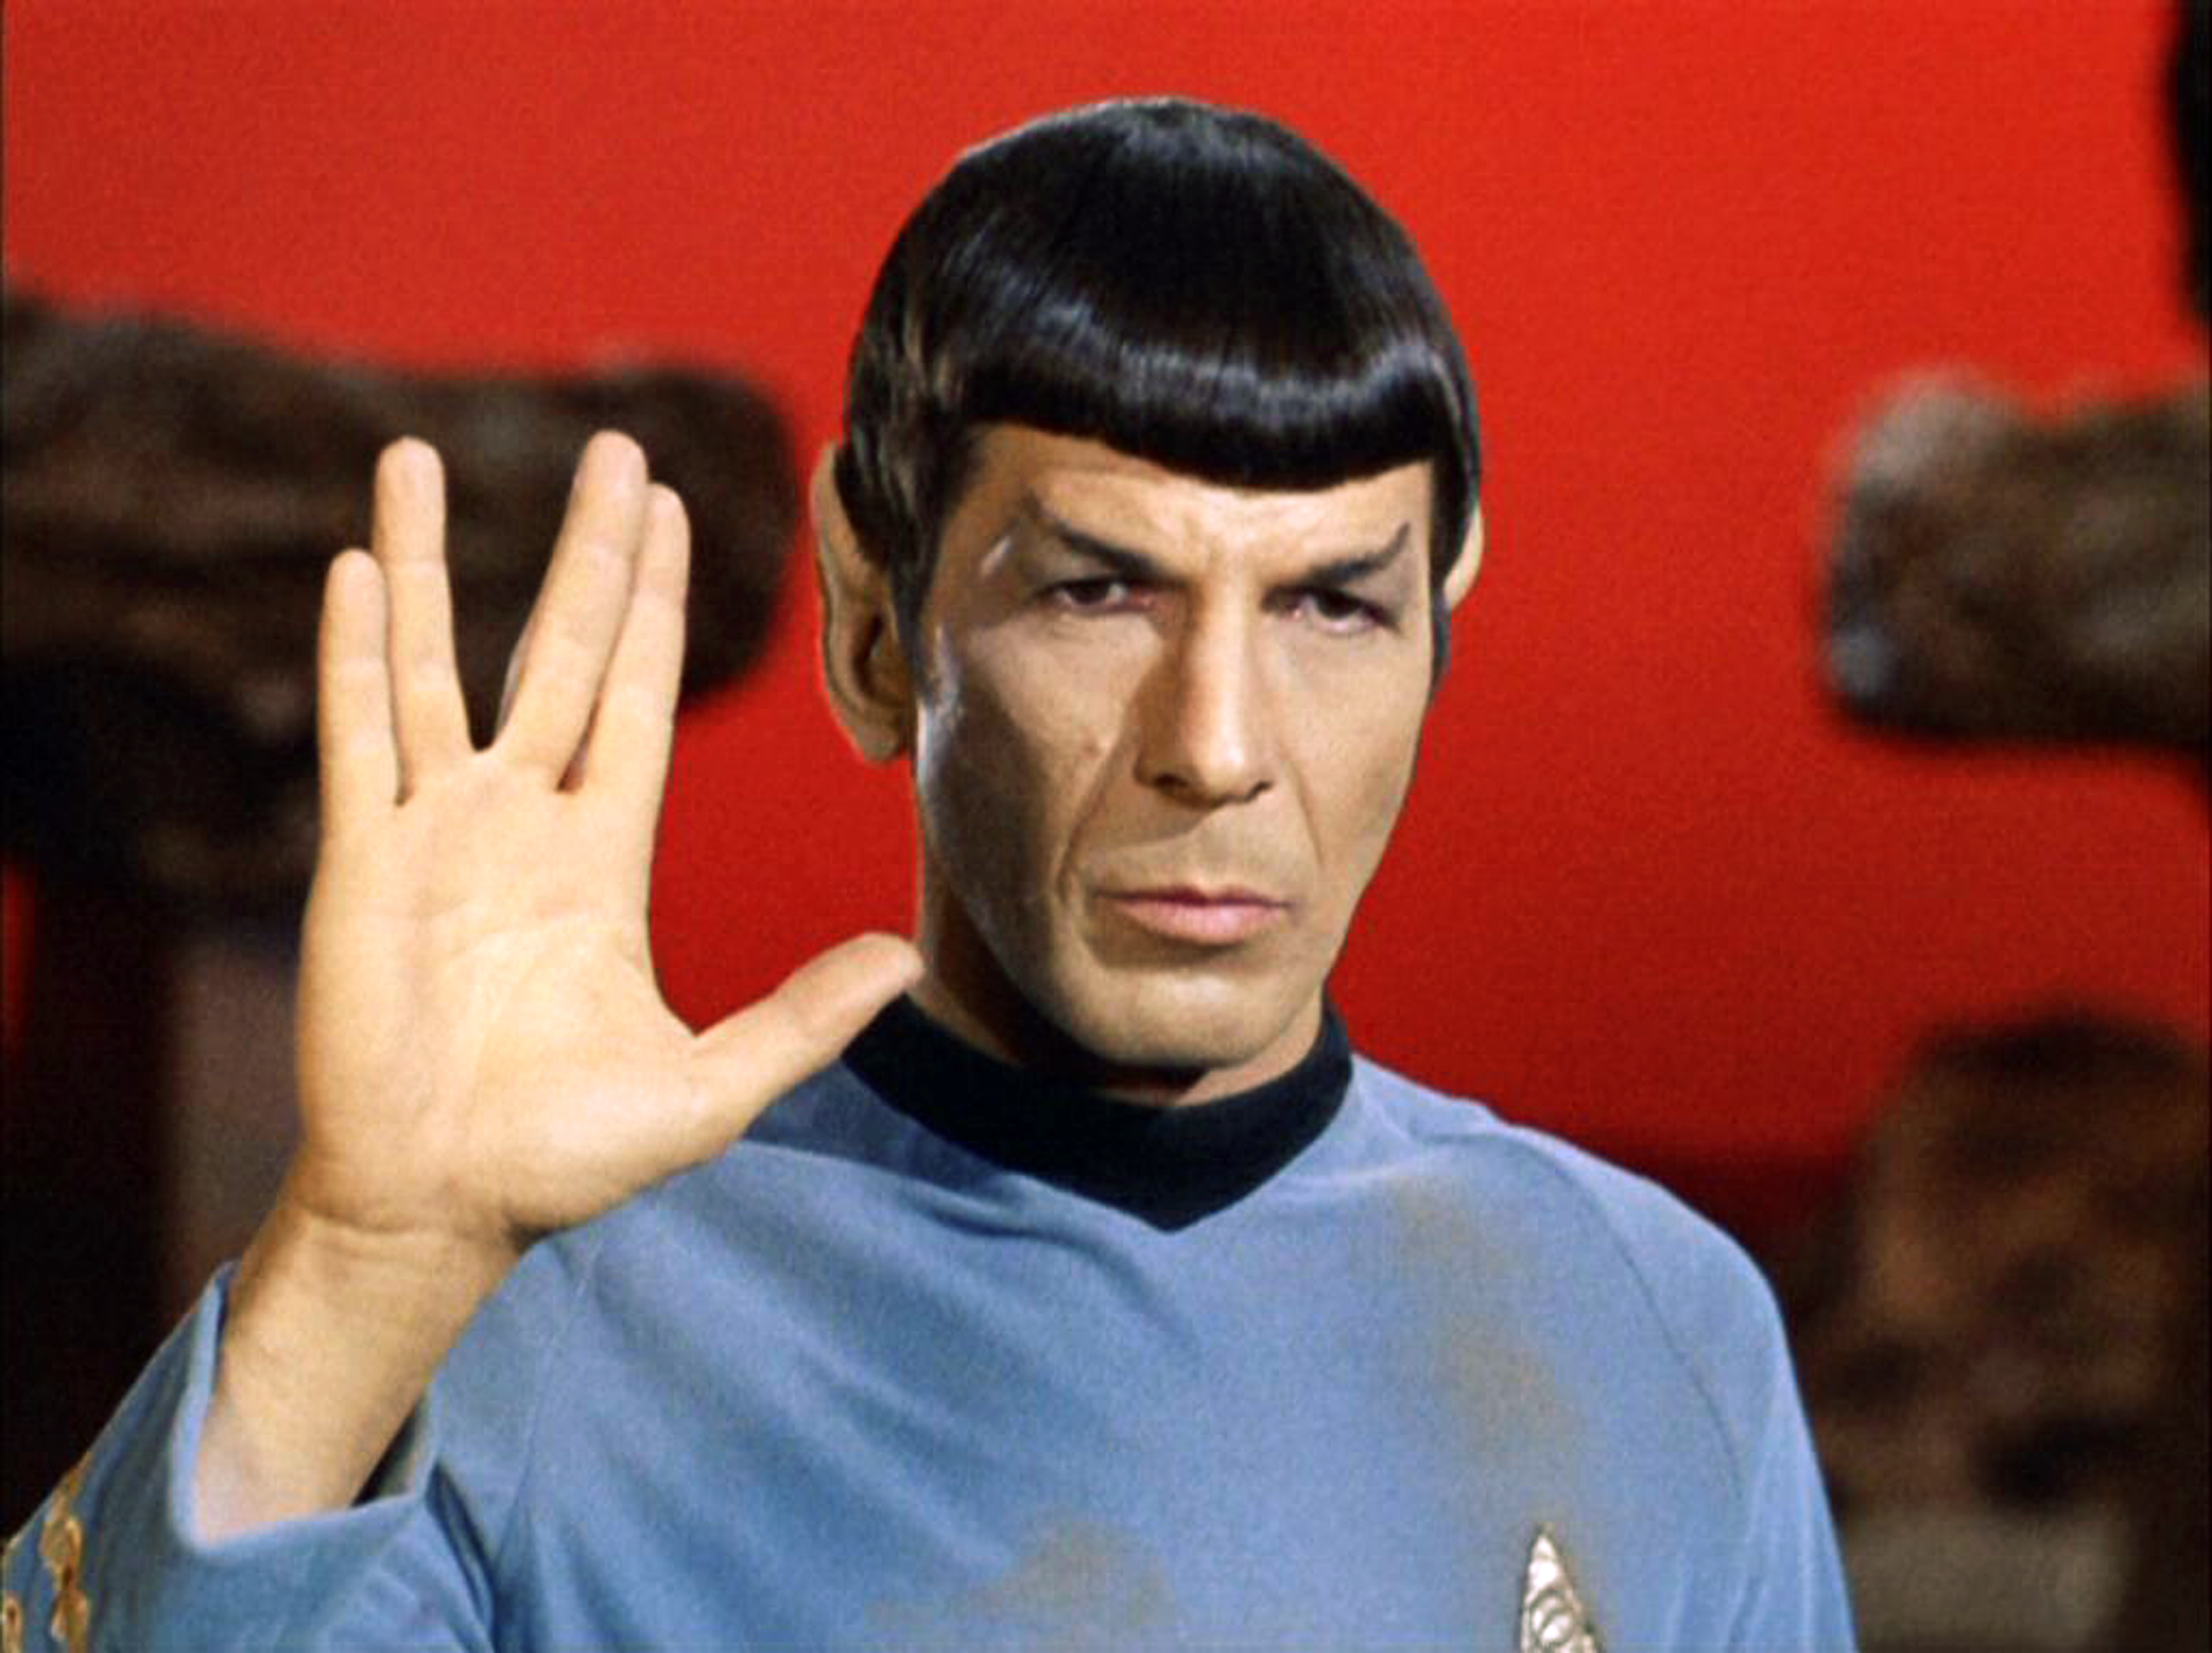 Leonard Nimoy as Mr. Spock  in  Star Trek: The Original Series  episode 'Amok Time'. Spock shows the Vulcan salute, usually accompanied with the words,  Live long and prosper.